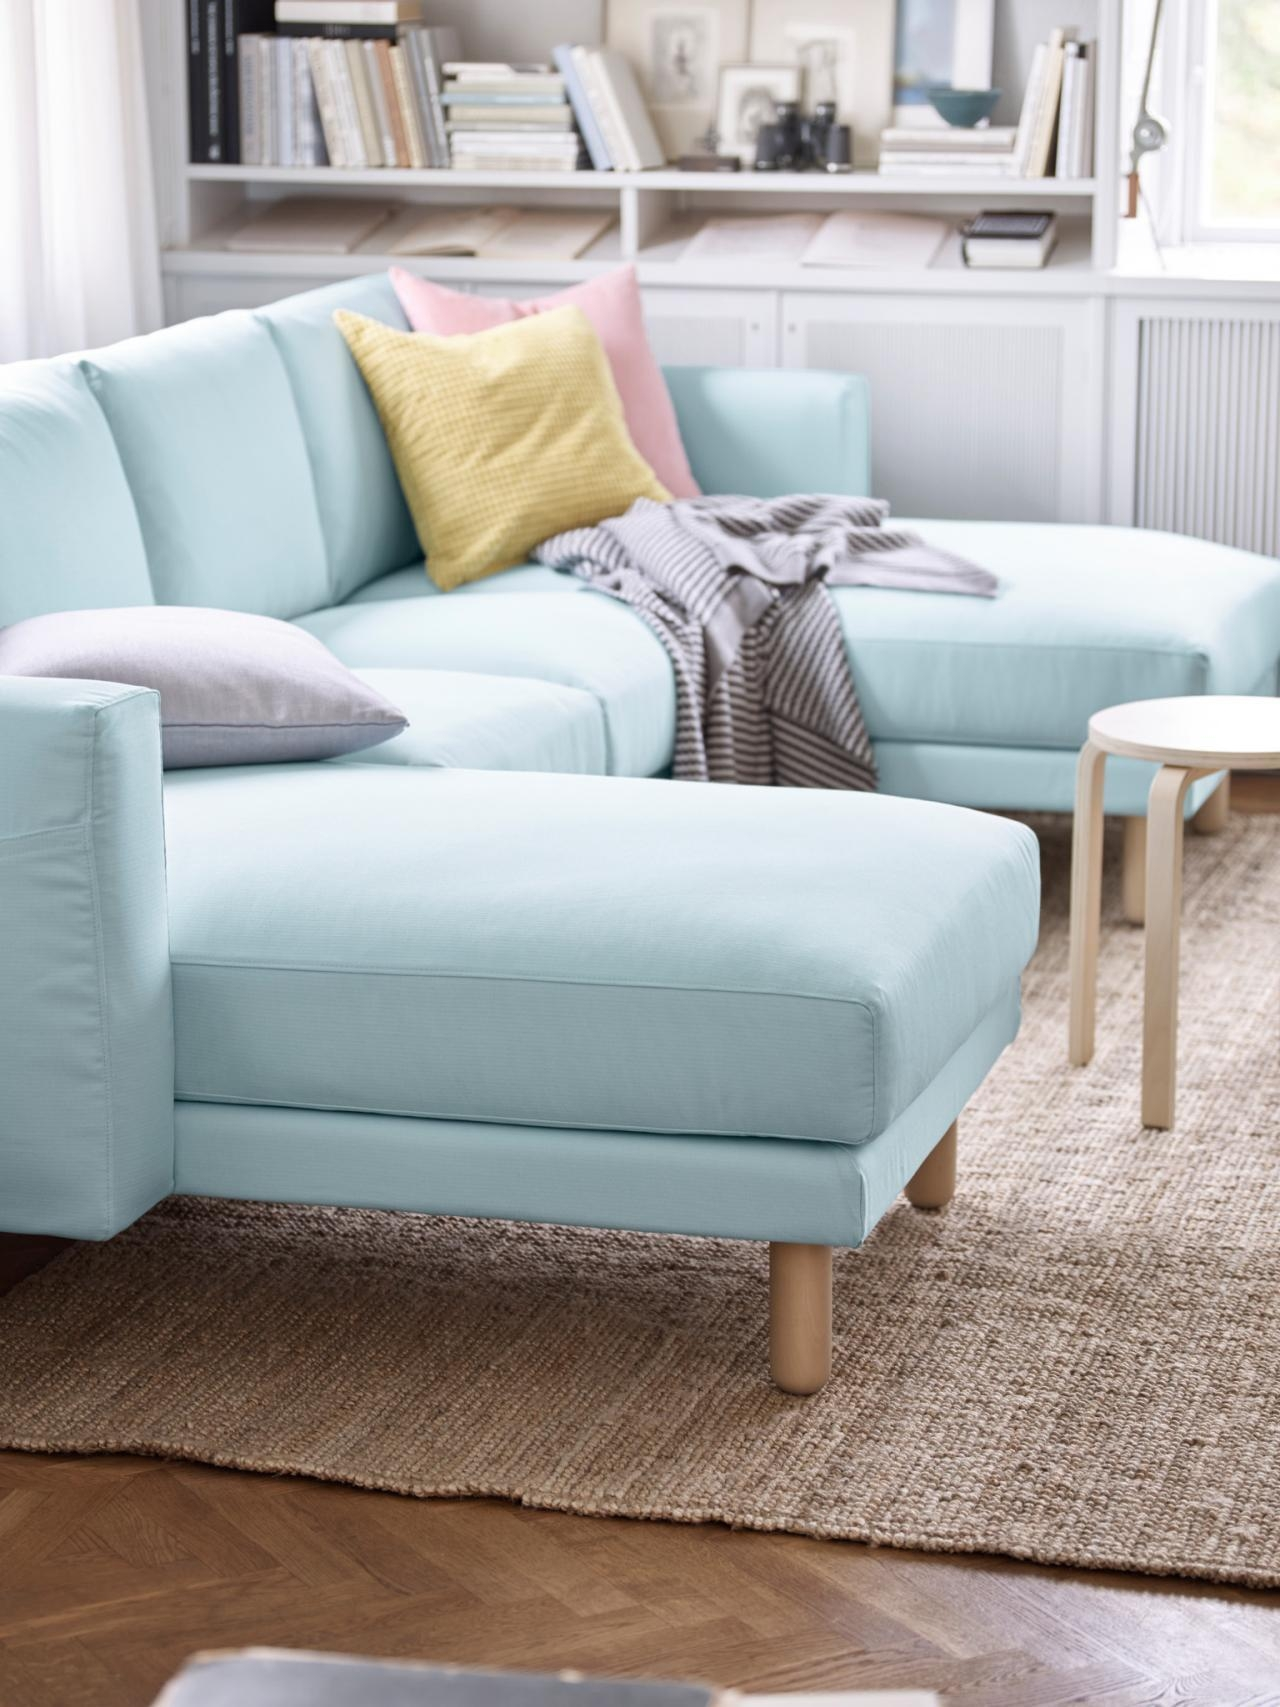 5 Apartment Sized Sofas That Are Lifesavers | Hgtv's Decorating pertaining to Apartment Sofa Sectional